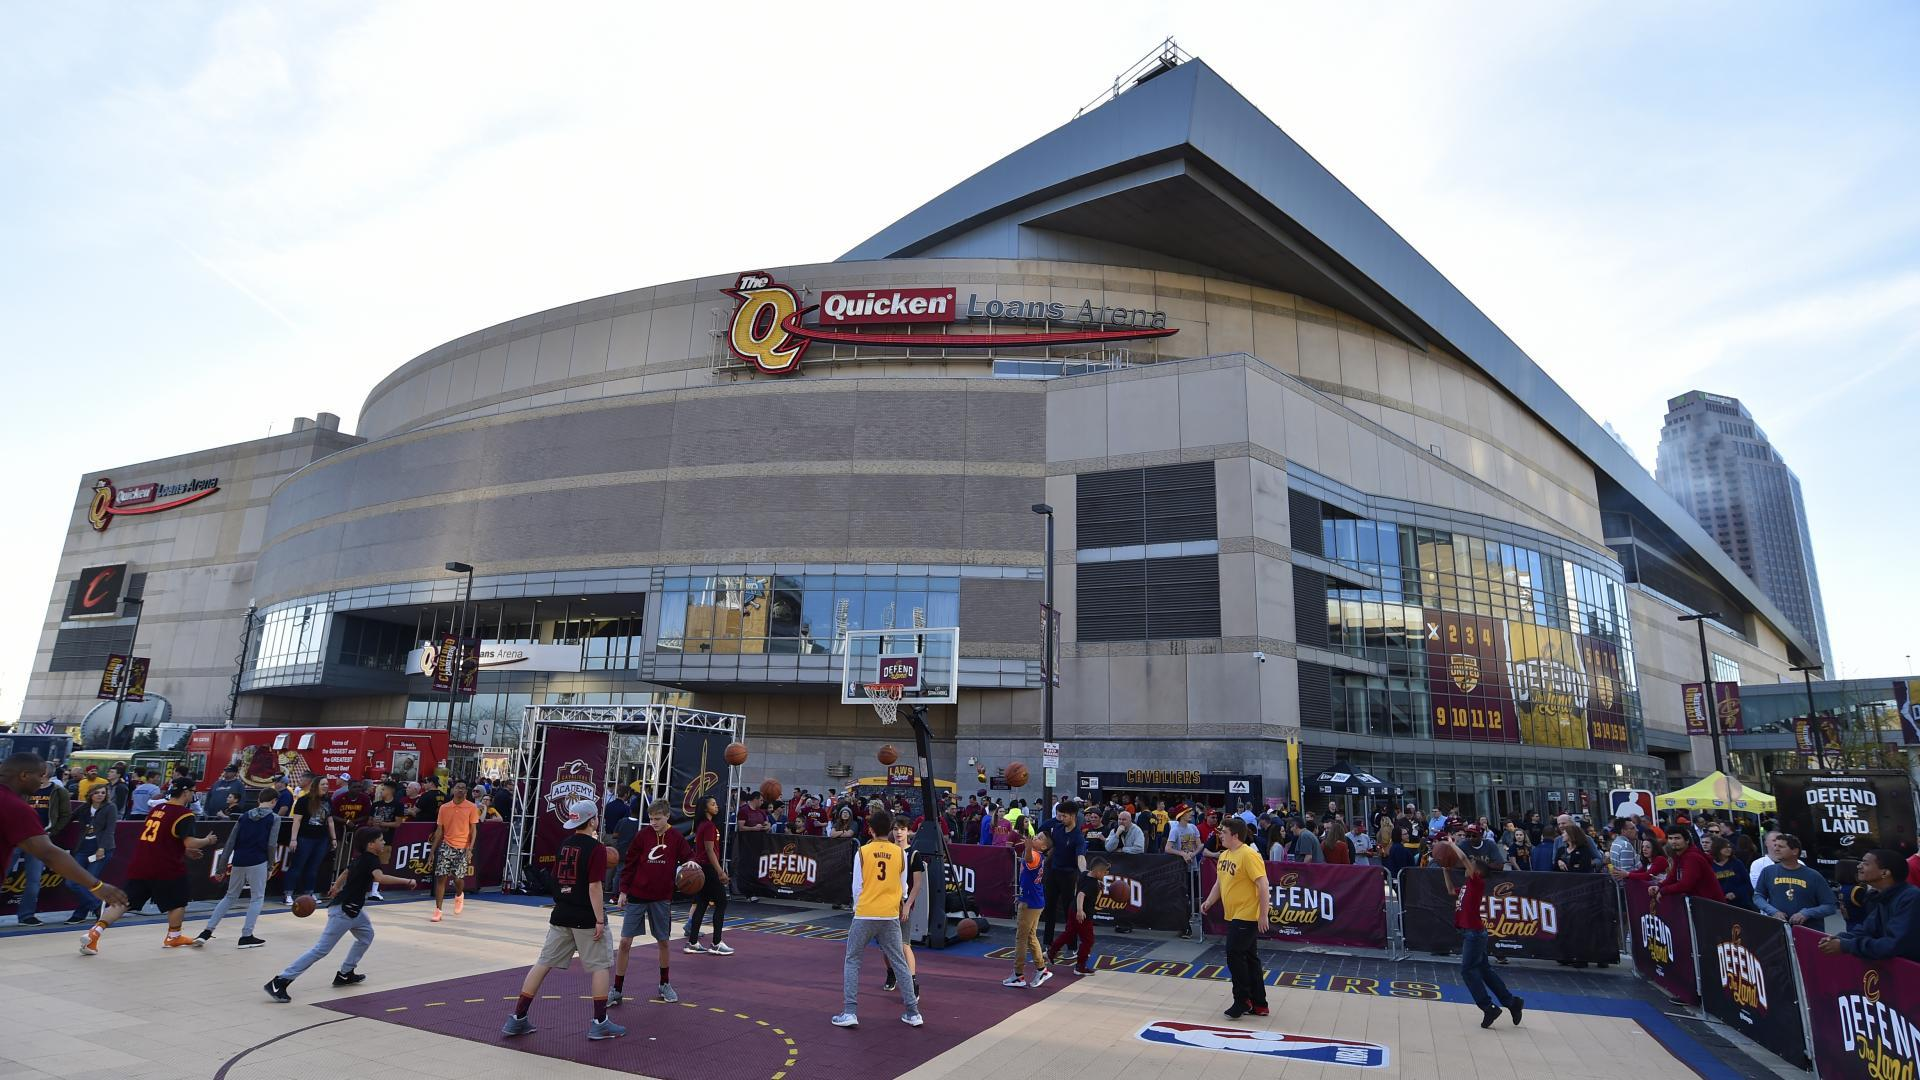 e41681f5bce Quicken Loans Arena became the first sensory-inclusive arena in the world  in 2016.